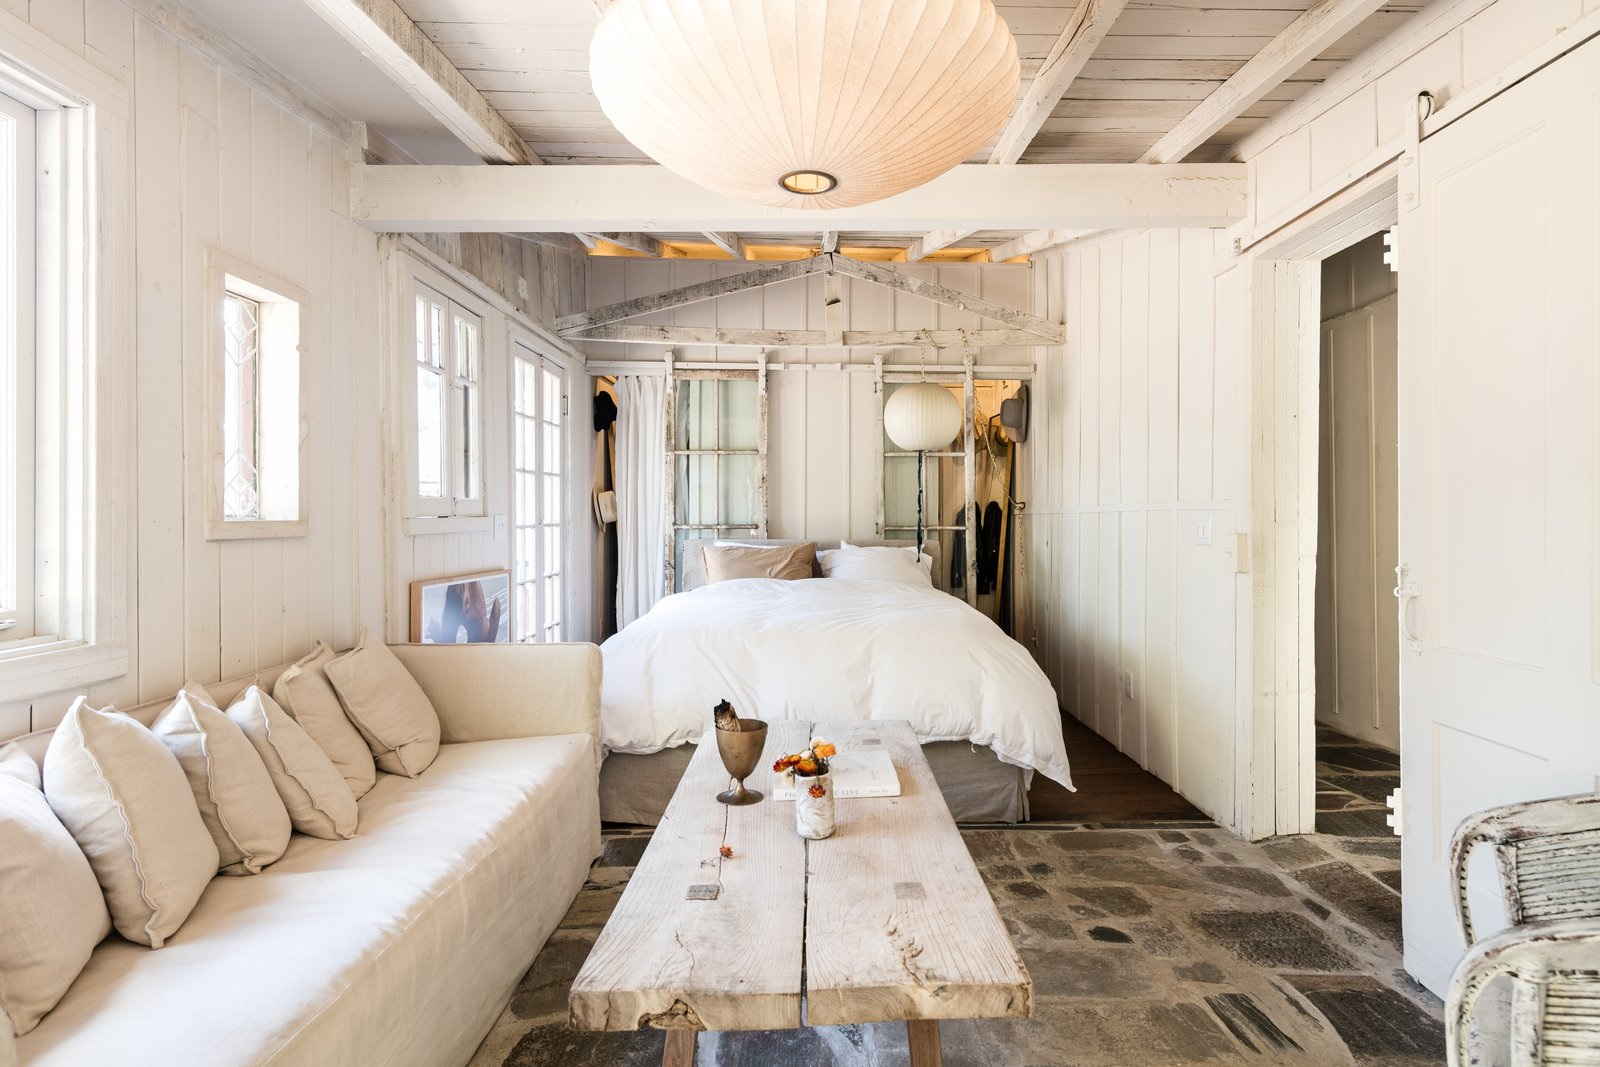 Bedroom, Medium Hardwood, Bed, Slate, and Pendant The bedroom has a comfortable, cozy feel—a Nelson bubble lamp gives the space a warm glow.     Best Bedroom Slate Bed Medium Hardwood Pendant Photos from Leanne Ford's Vintage Echo Park Cabin Hits the Market at $995K